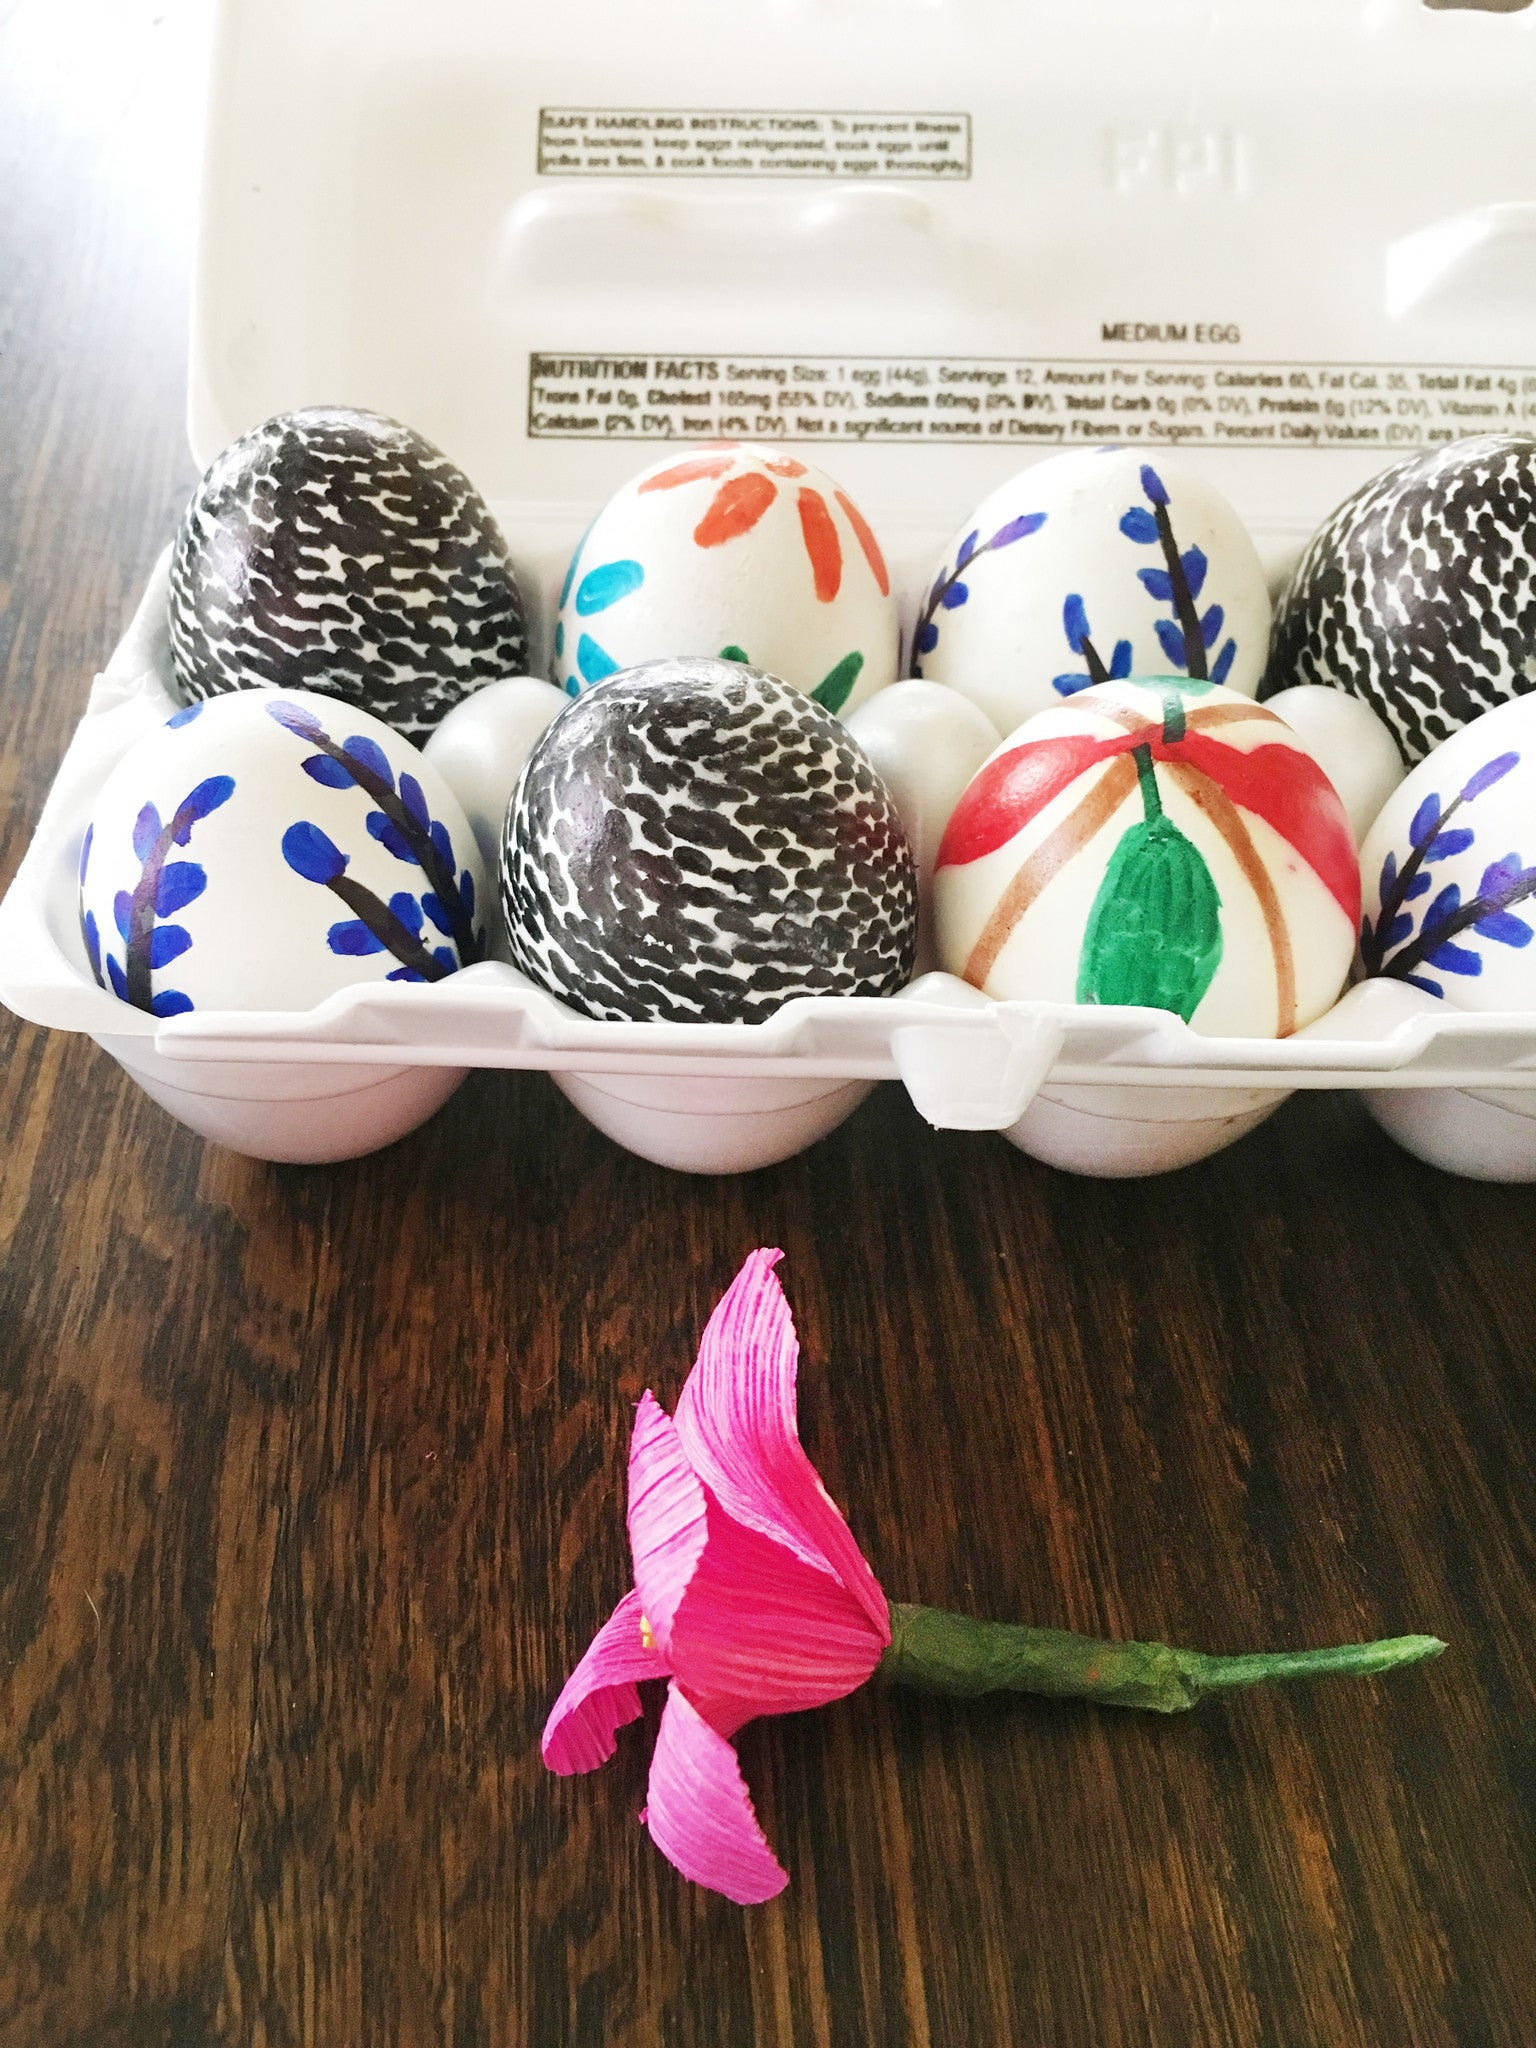 ShopMucho cascarones confetti eggs and Easter traditions